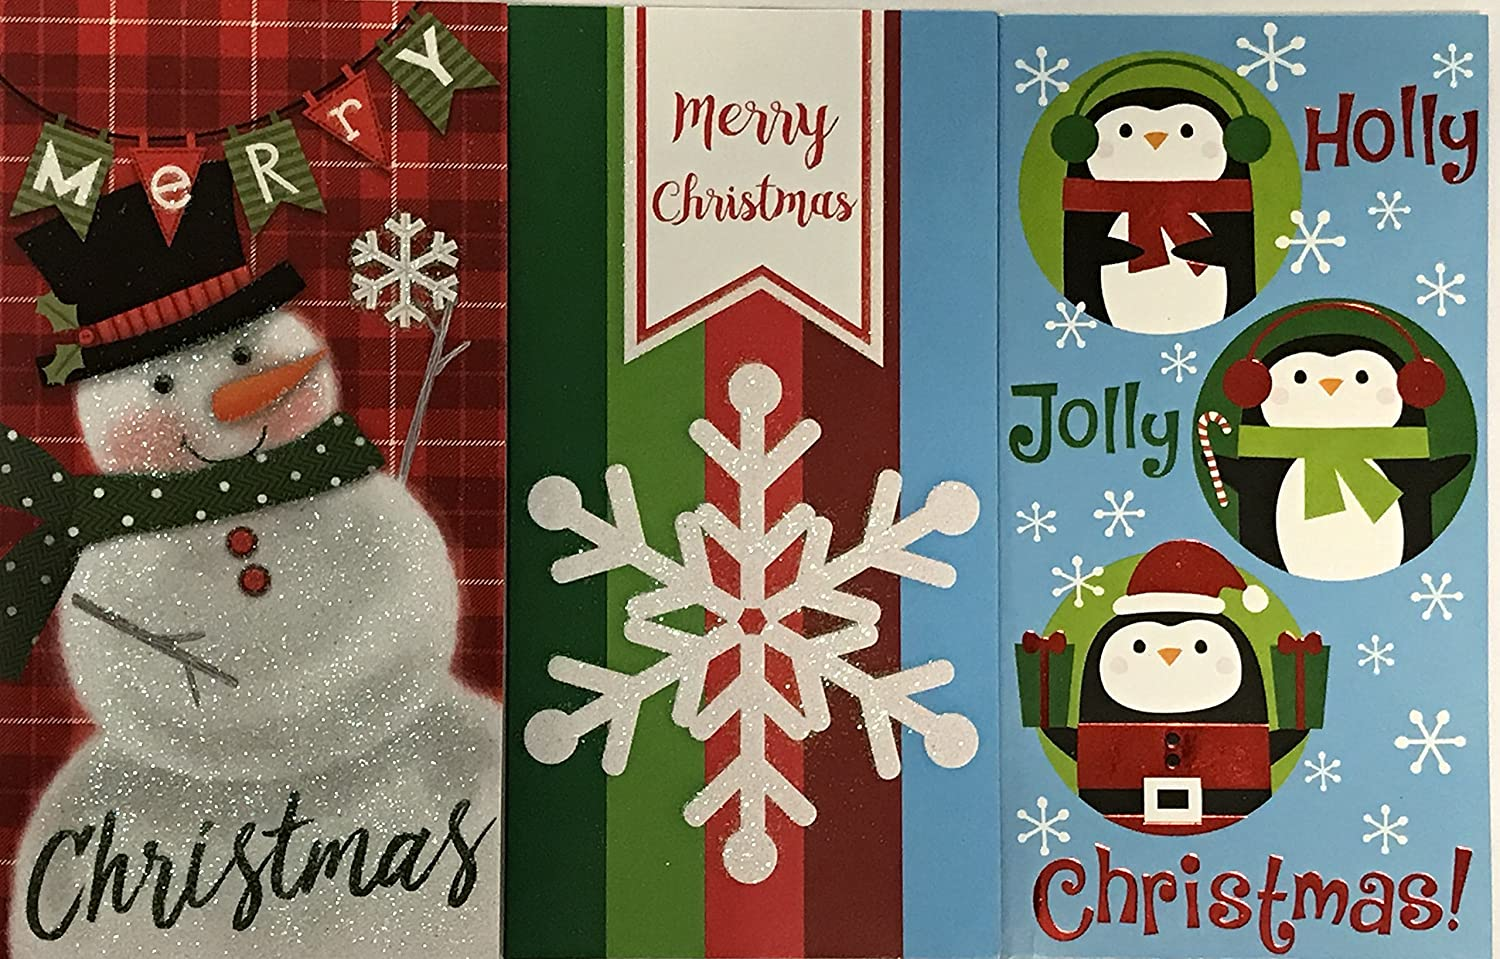 24 Christmas Gift Card Holders with Envelopes Money Card Holder; 3 Packs of 8 Santa Bright Assorted Styles